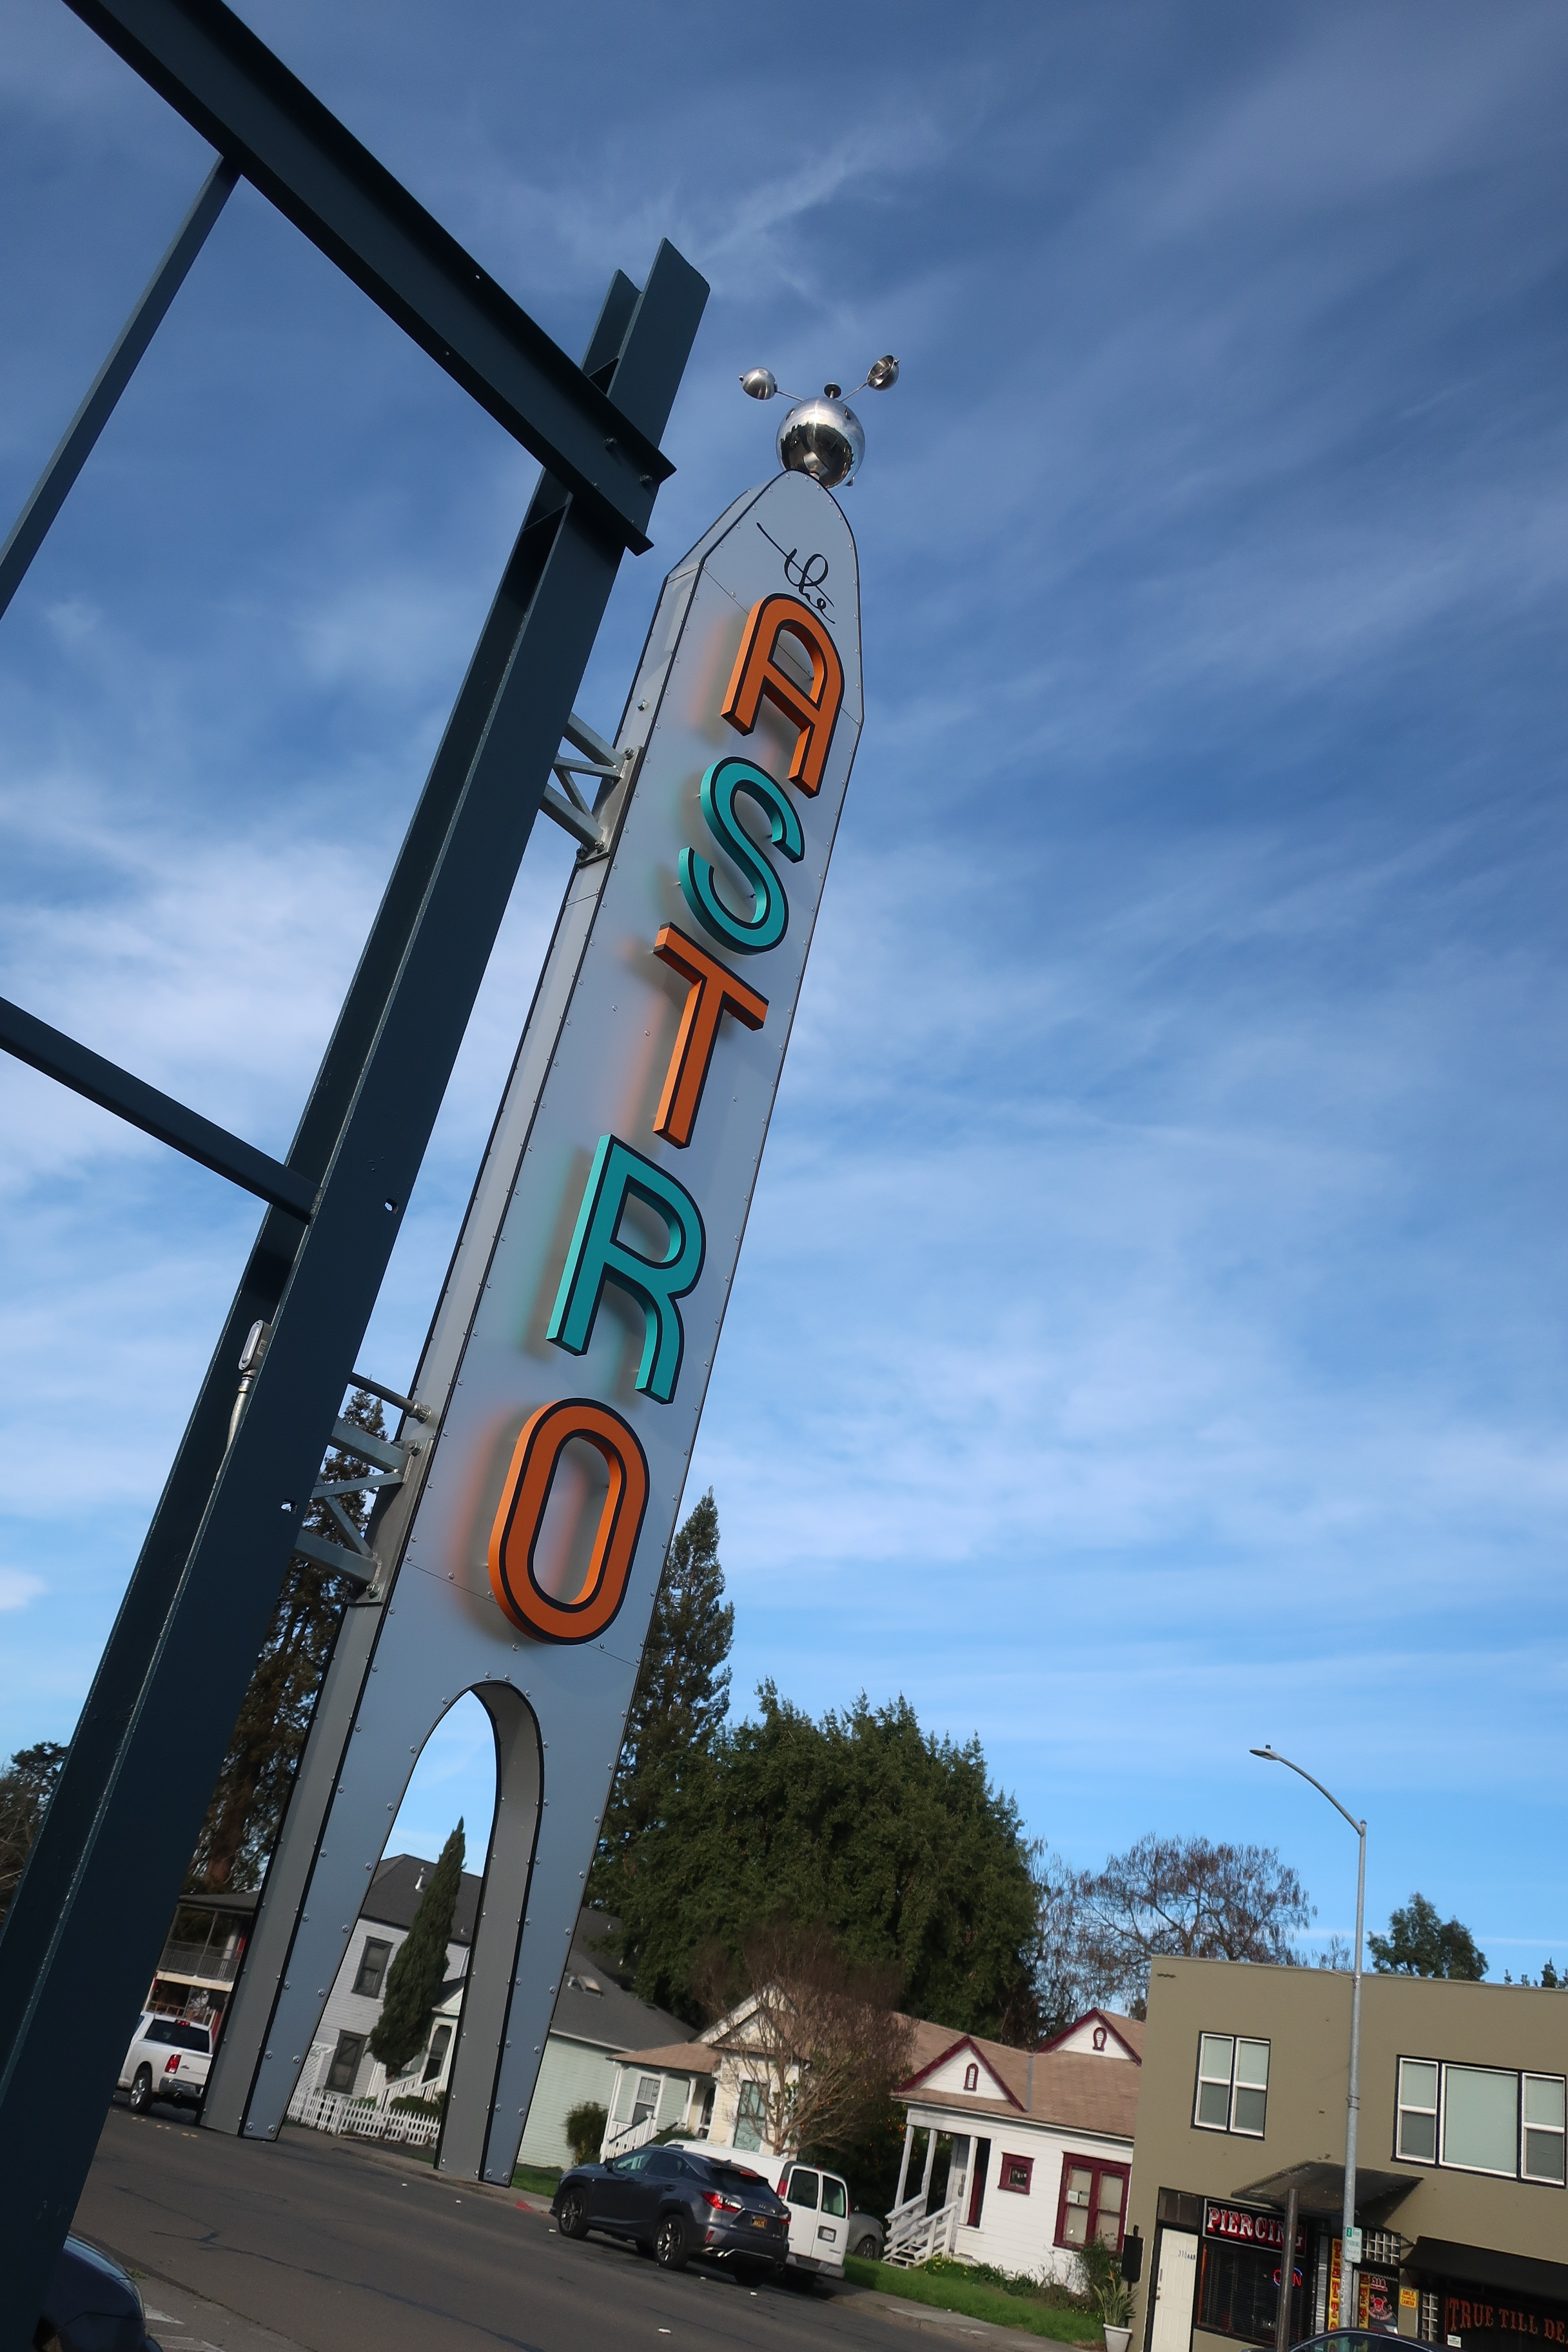 Staycation in Santa Rosa at the Astro Motel